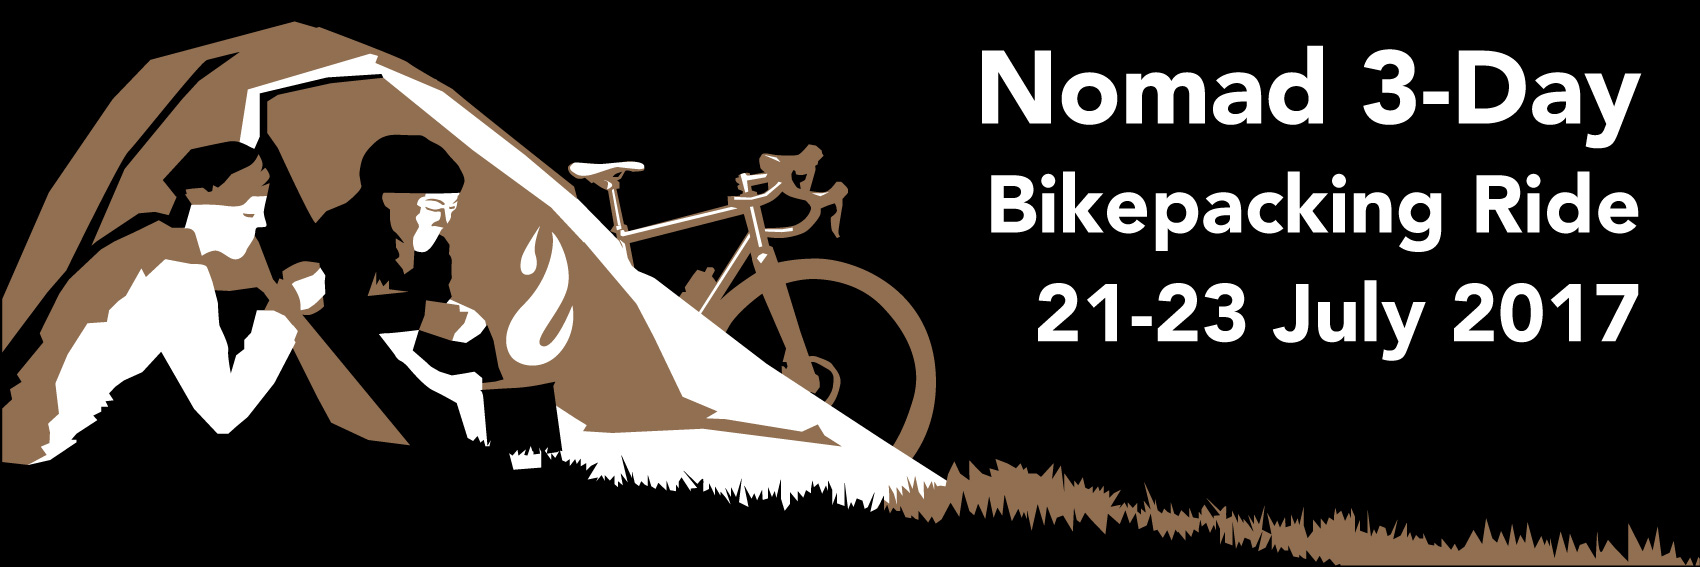 Nomad-Three-Day-Bikepacking-Adventure-Ride-logo-horizontal-170615.jpg